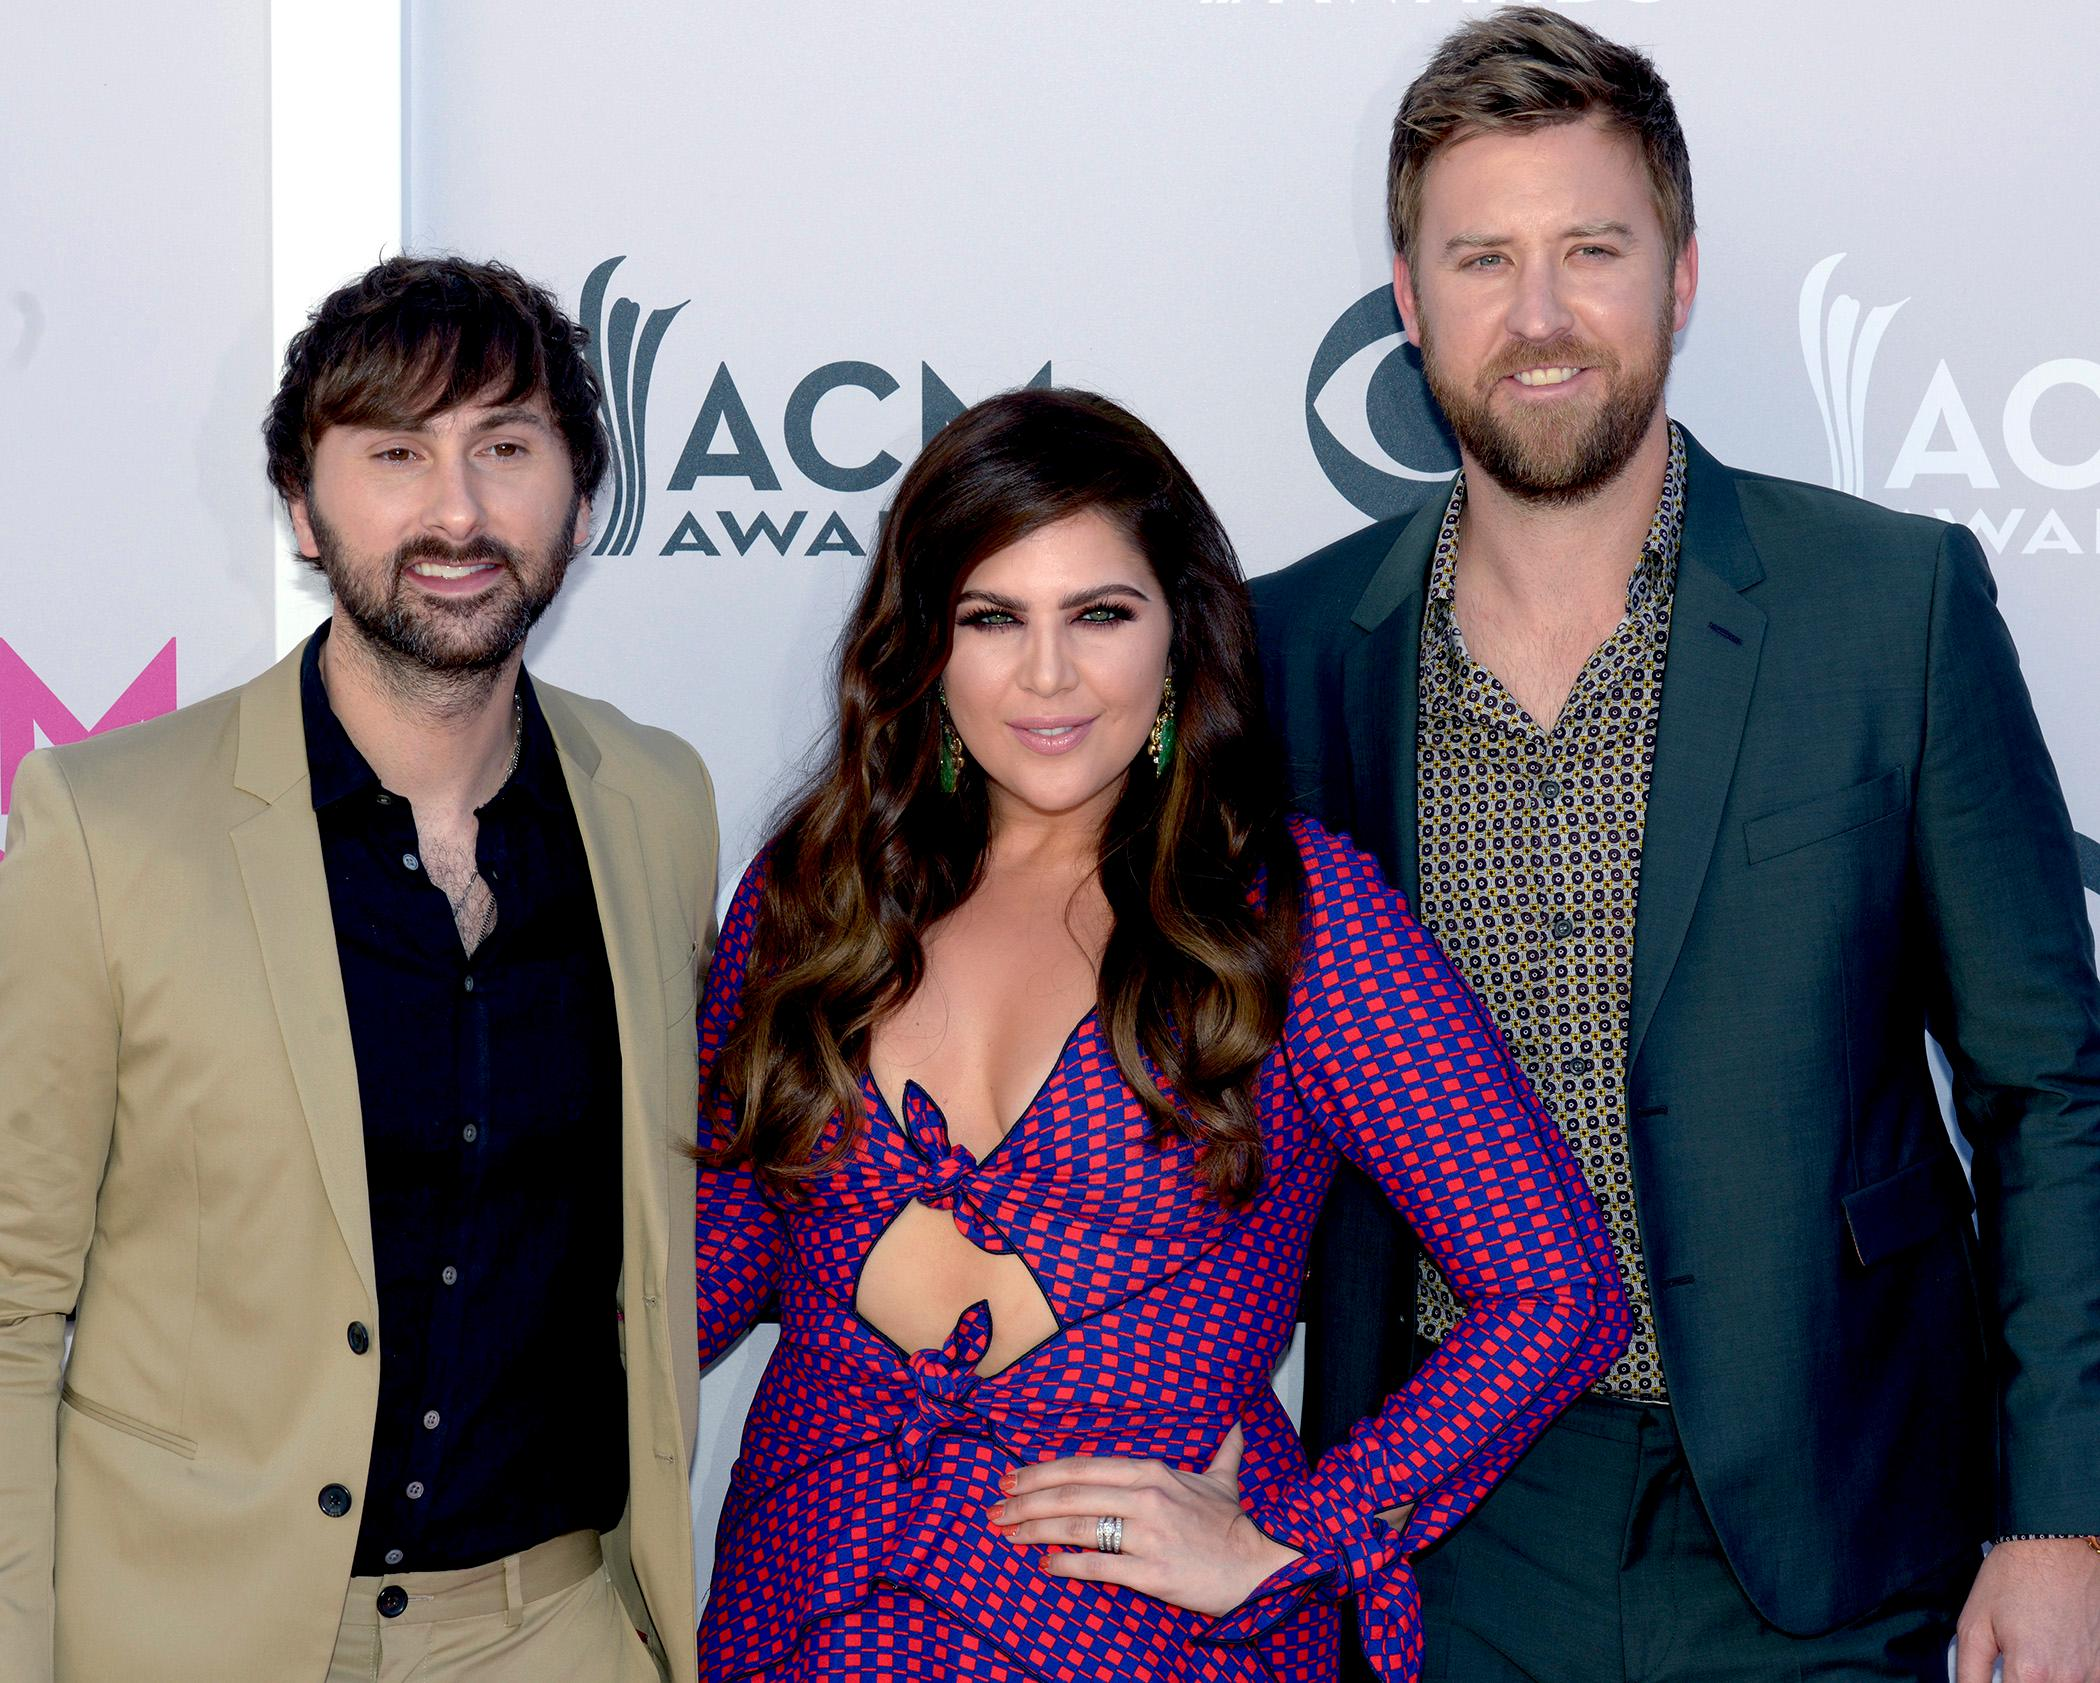 Lady Antebellum at the Academy of Country Music Awards red carpet at T-Mobile Arena. Sunday, April 2, 2017. (Glenn Pinkerton/ Las Vegas News Bureau)